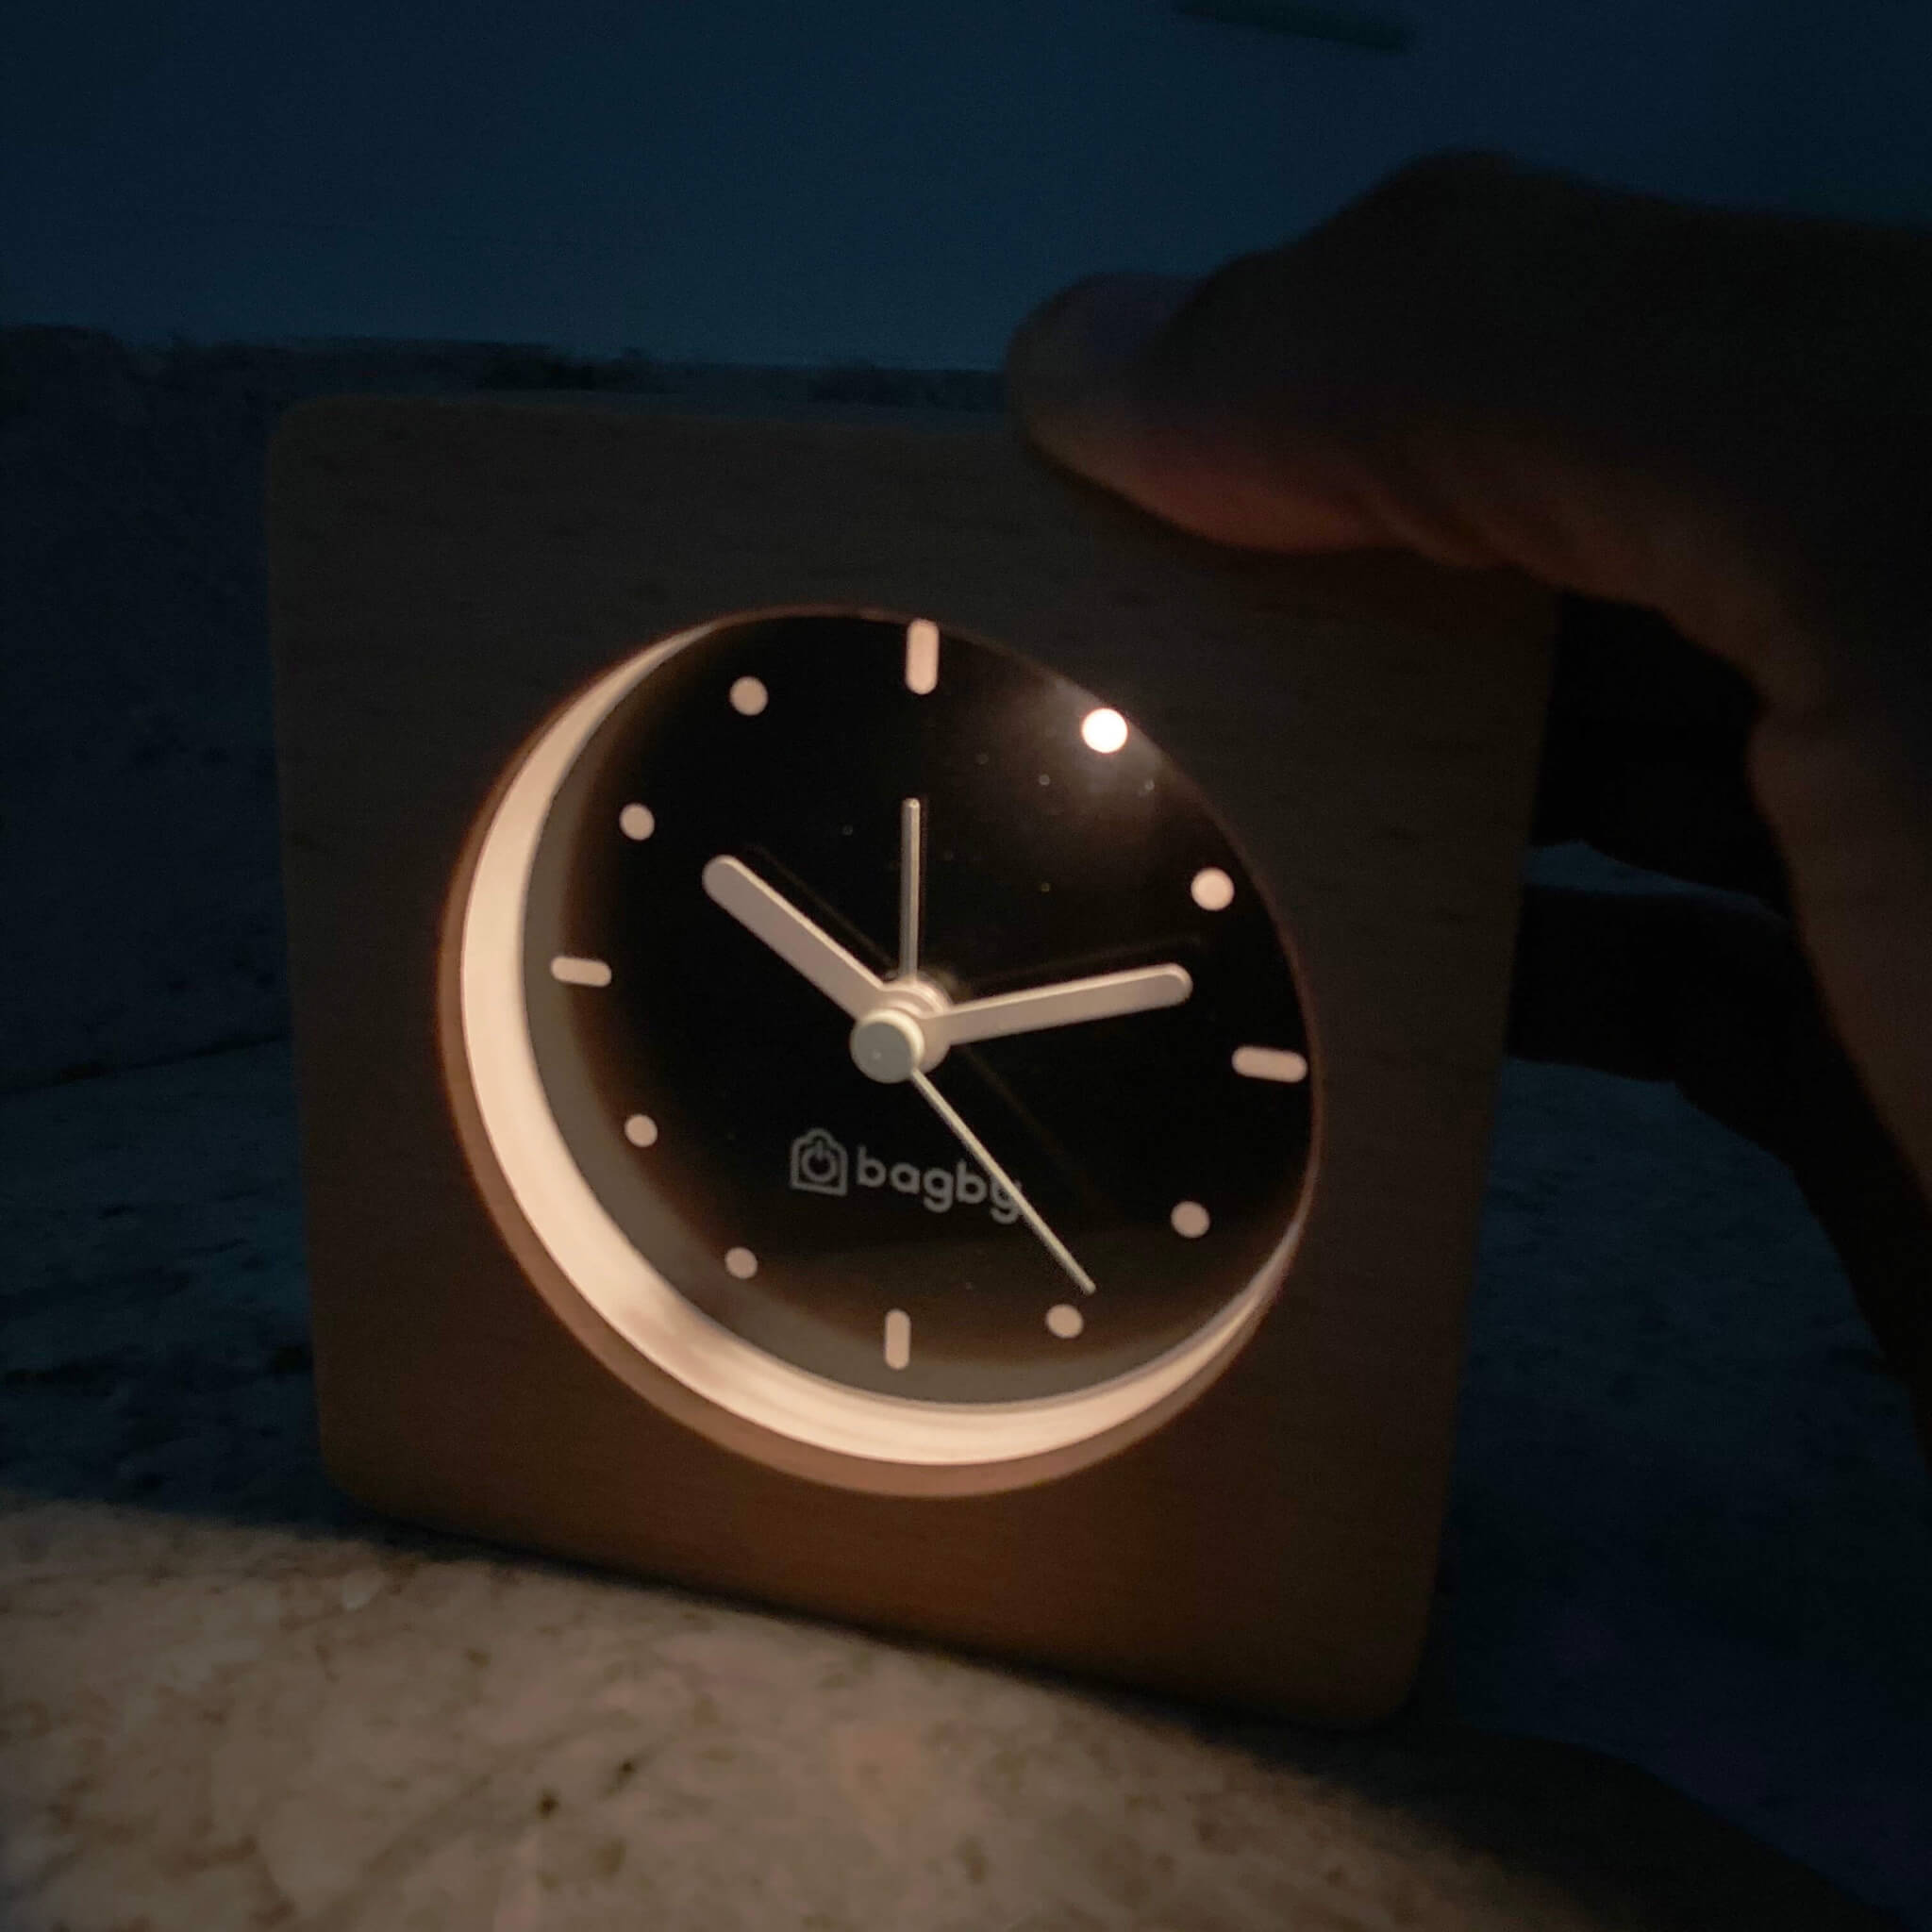 Minimalist Silent Digital-Free Alarm Clock Natural